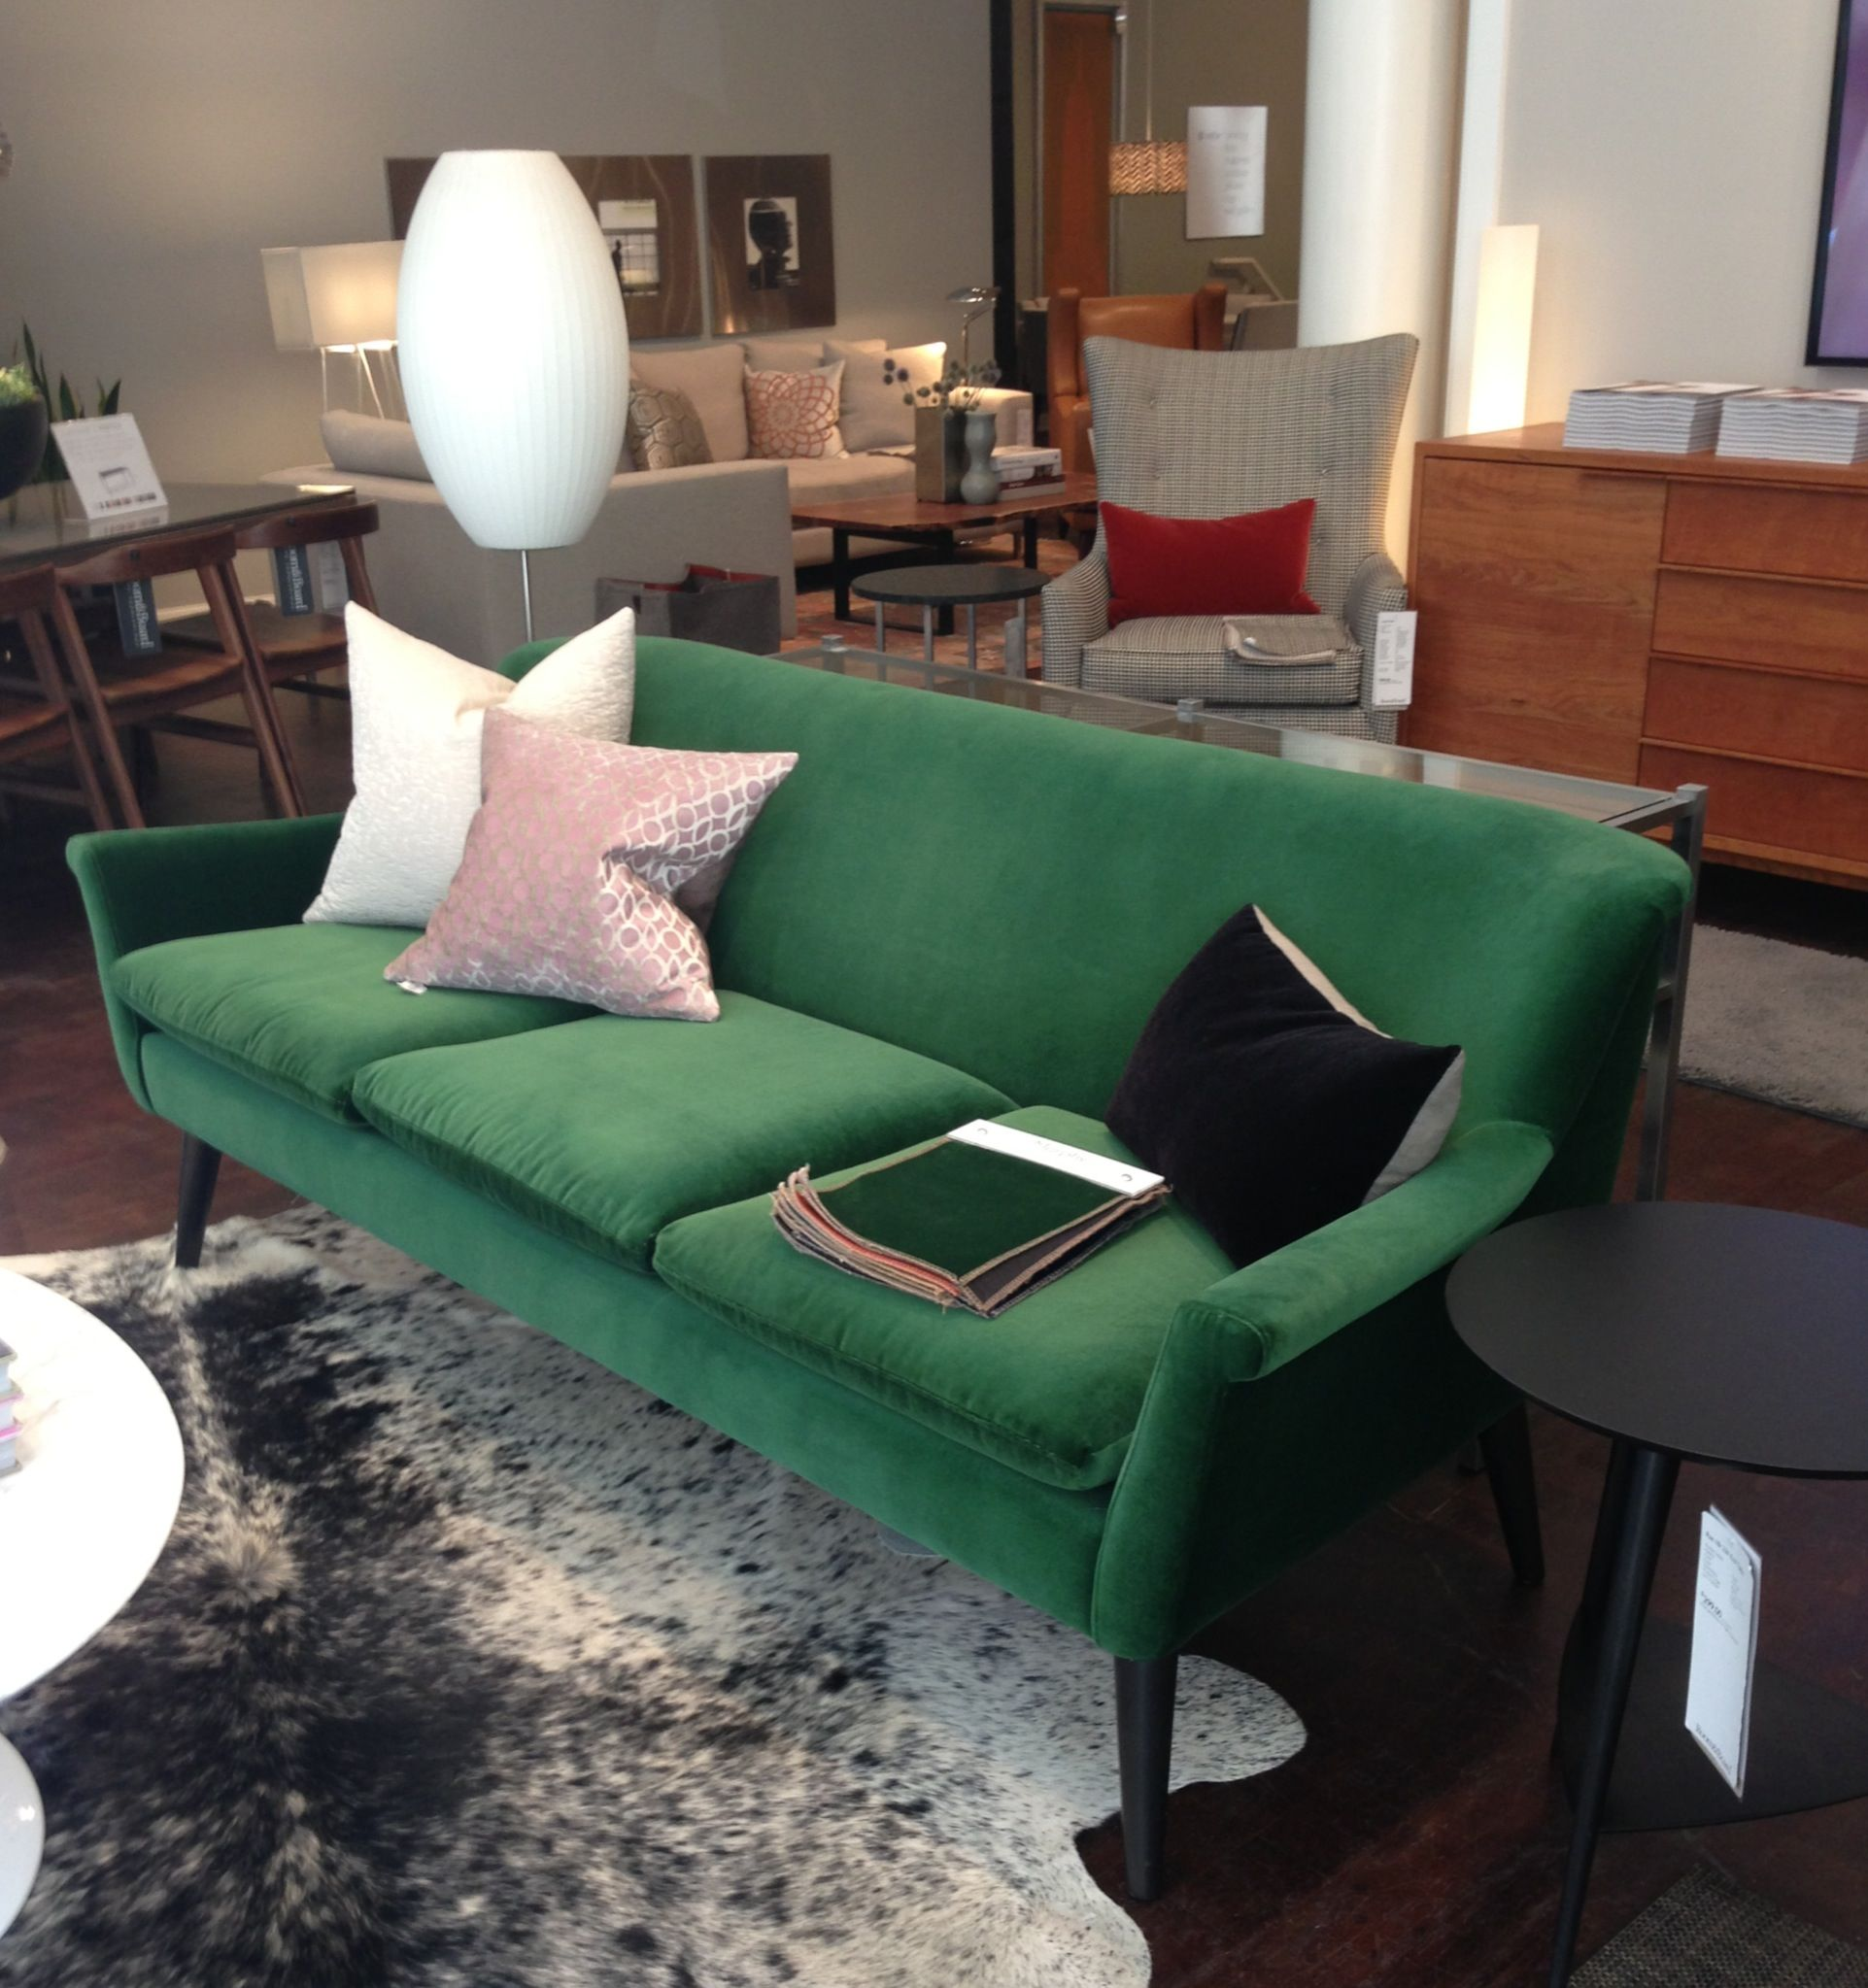 Slipcovers For Sofas Emerald green couch at Room and Board